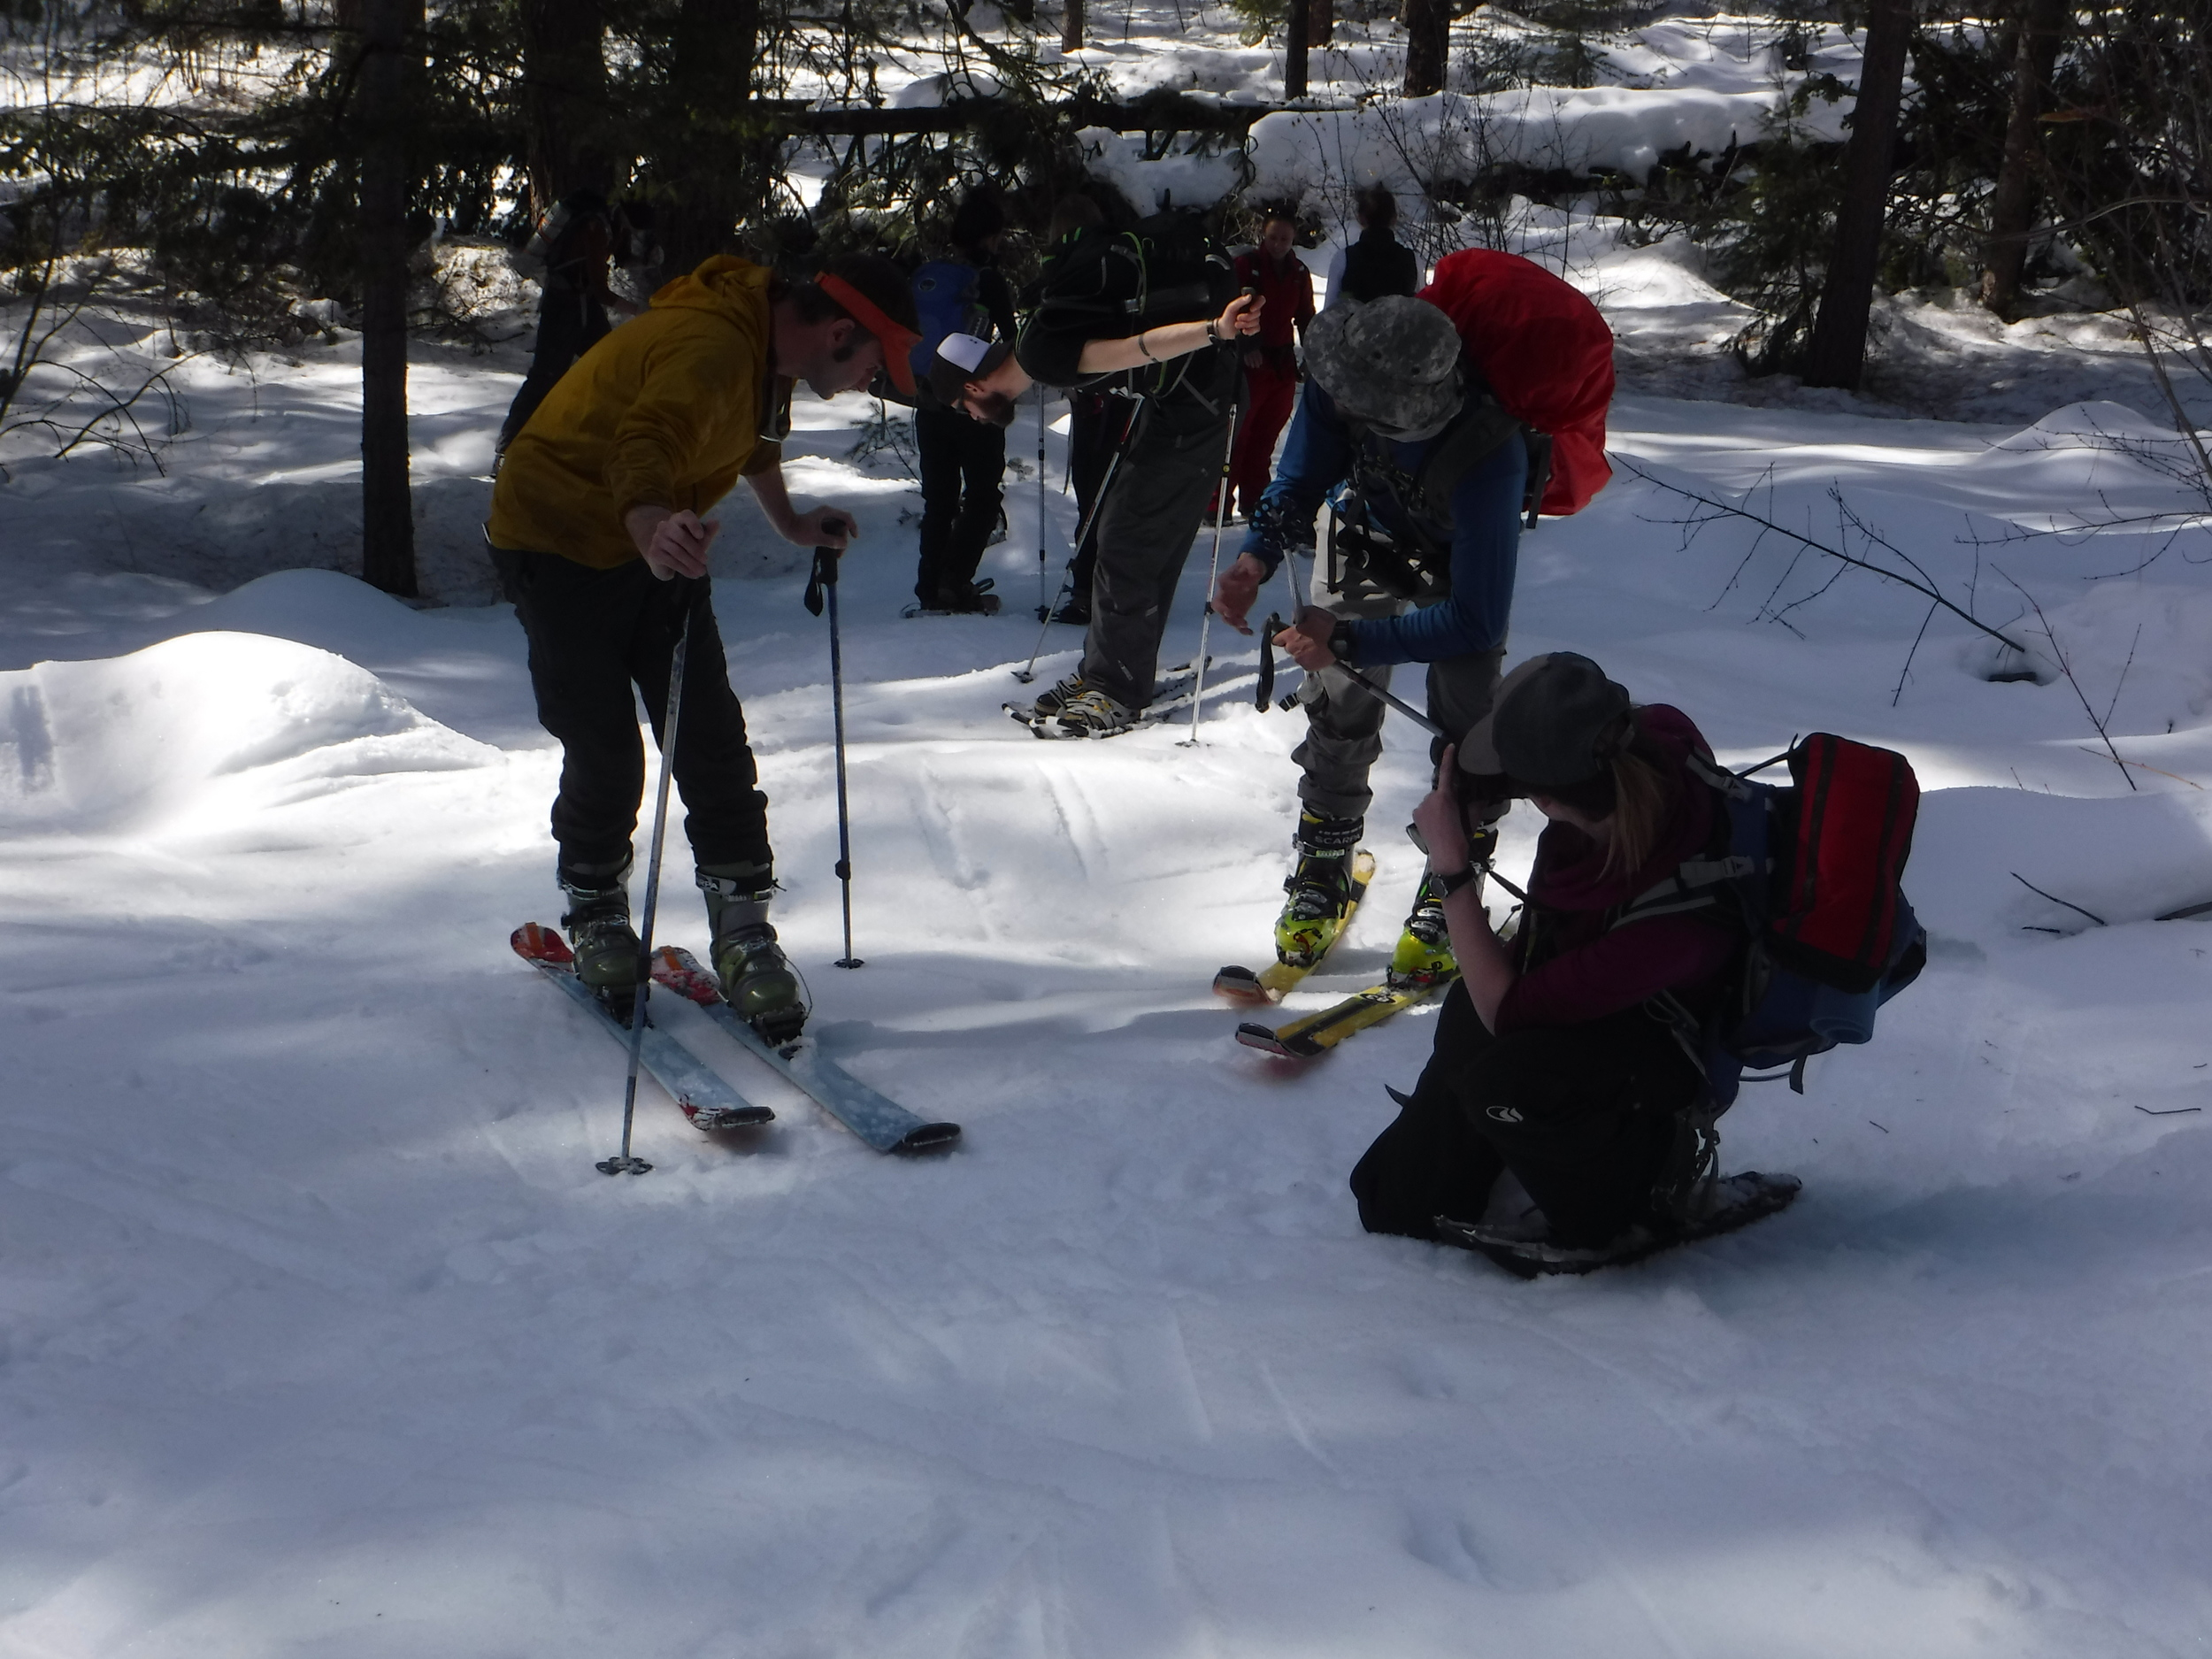 Using our tracking skills on the way to the snow tests.